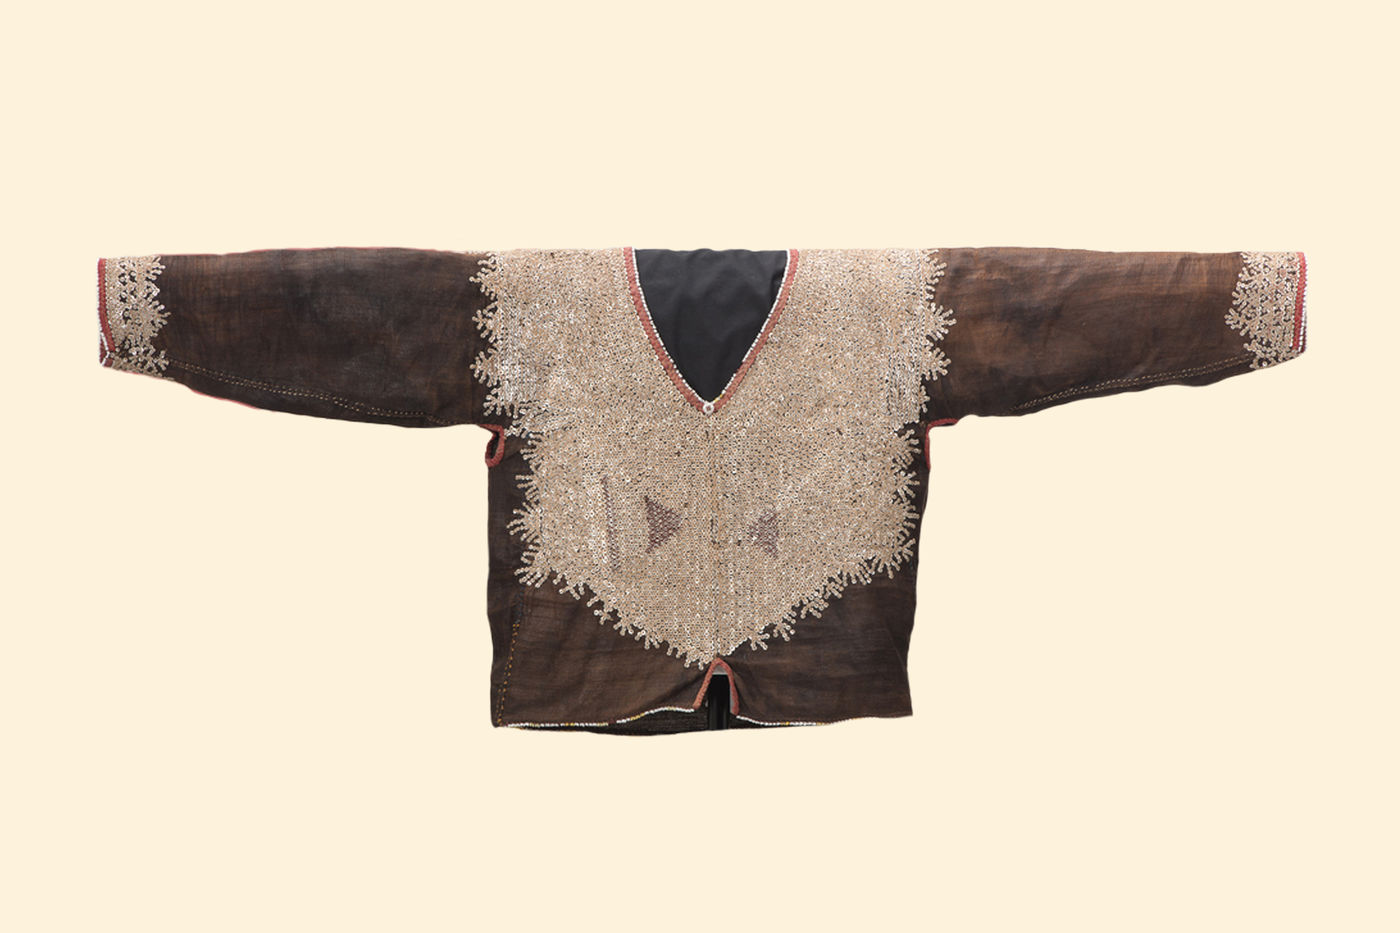 Man's jacket, mostly brown in color, with a v-shaped neckline. Embroidery in a lighter color covers the jacket's chest and decorates the area of the sleeves worn around the wearer's wrists.